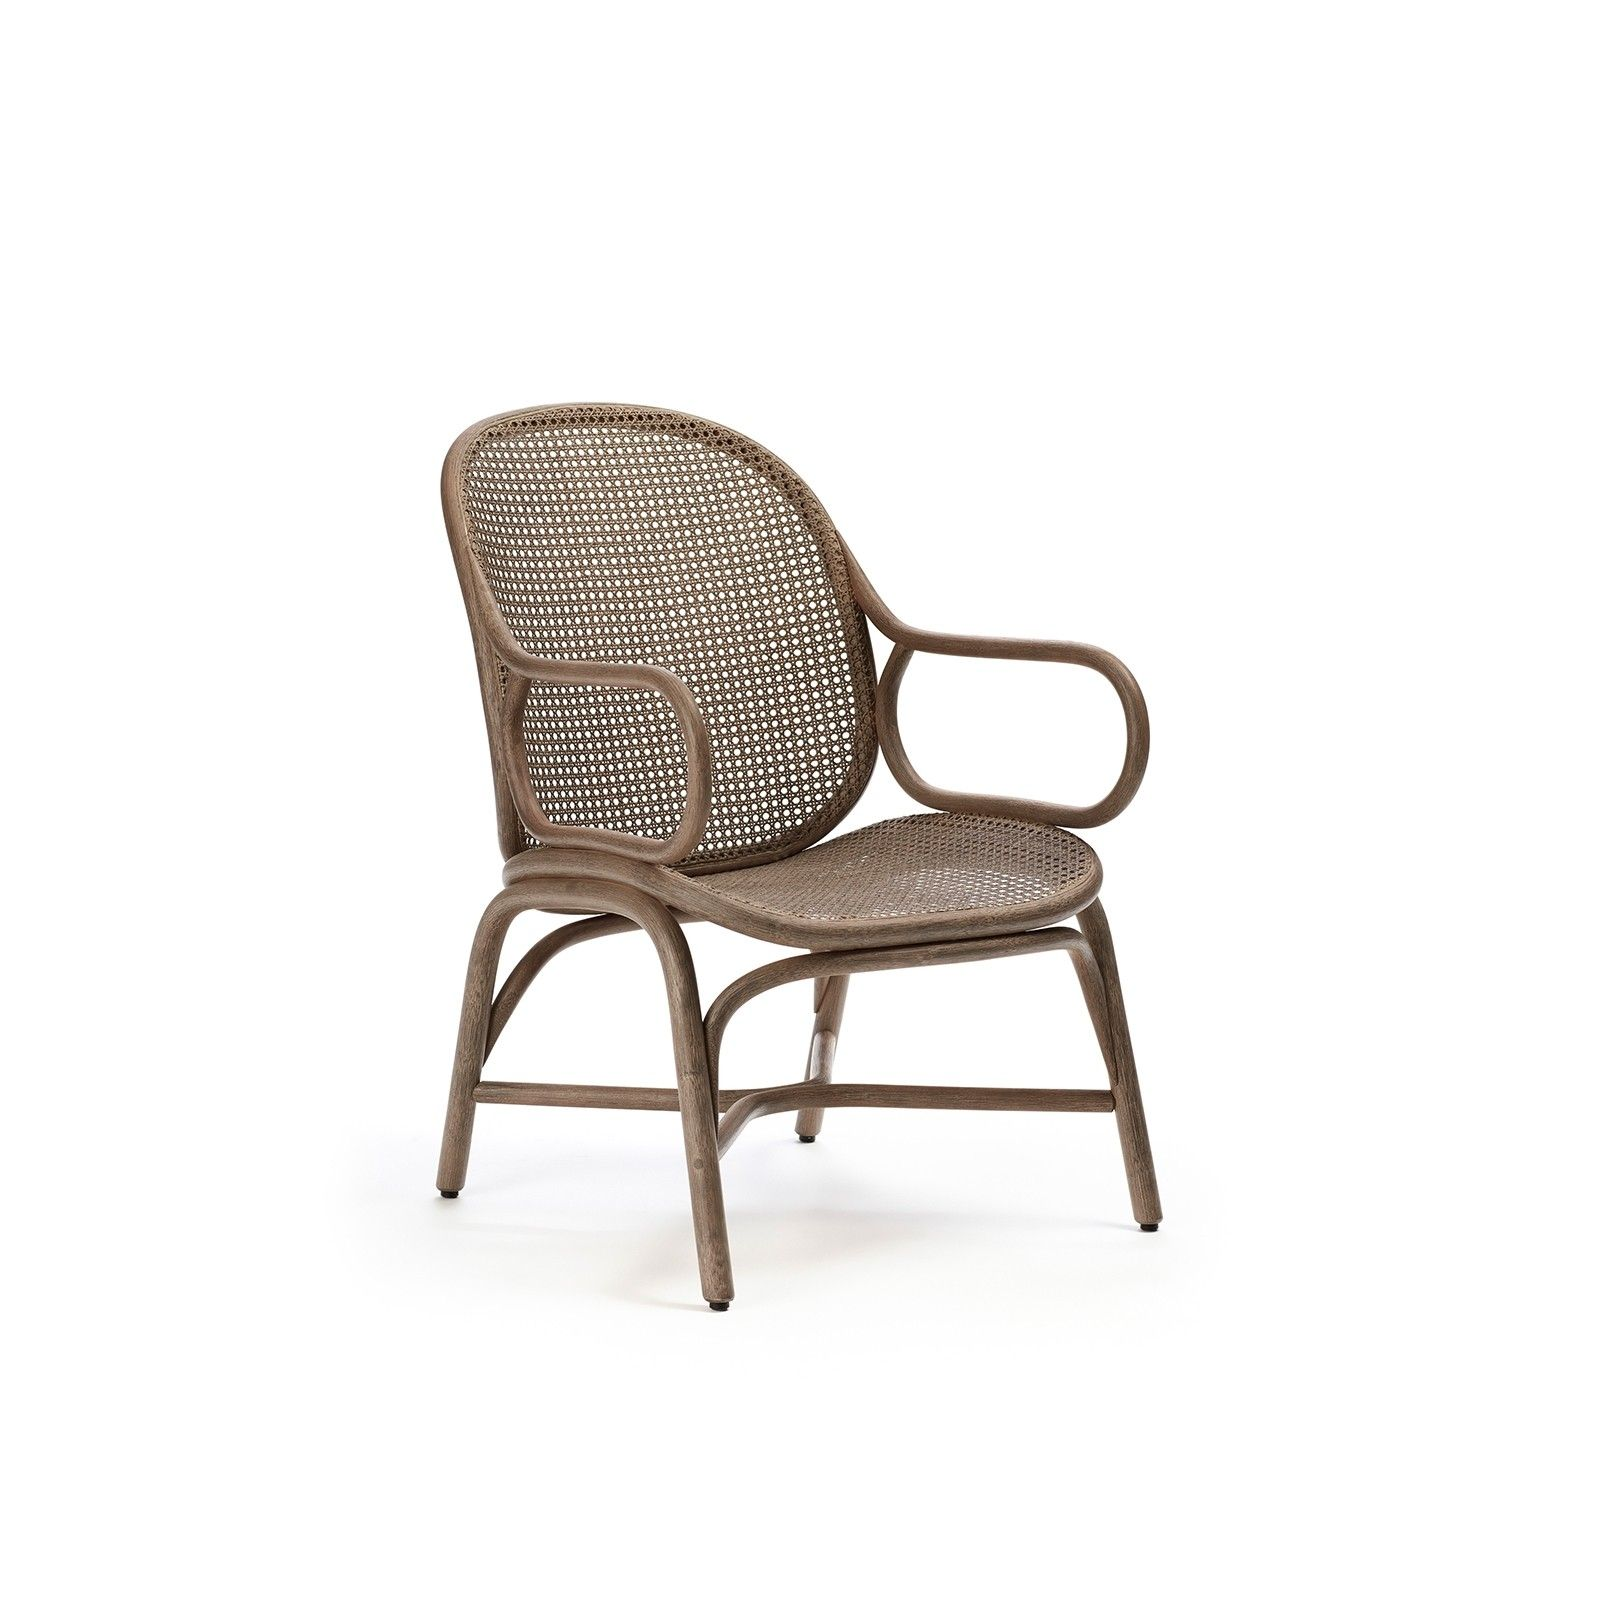 Frames Lounge Chair Ke Zu Furniture Residential And Contract